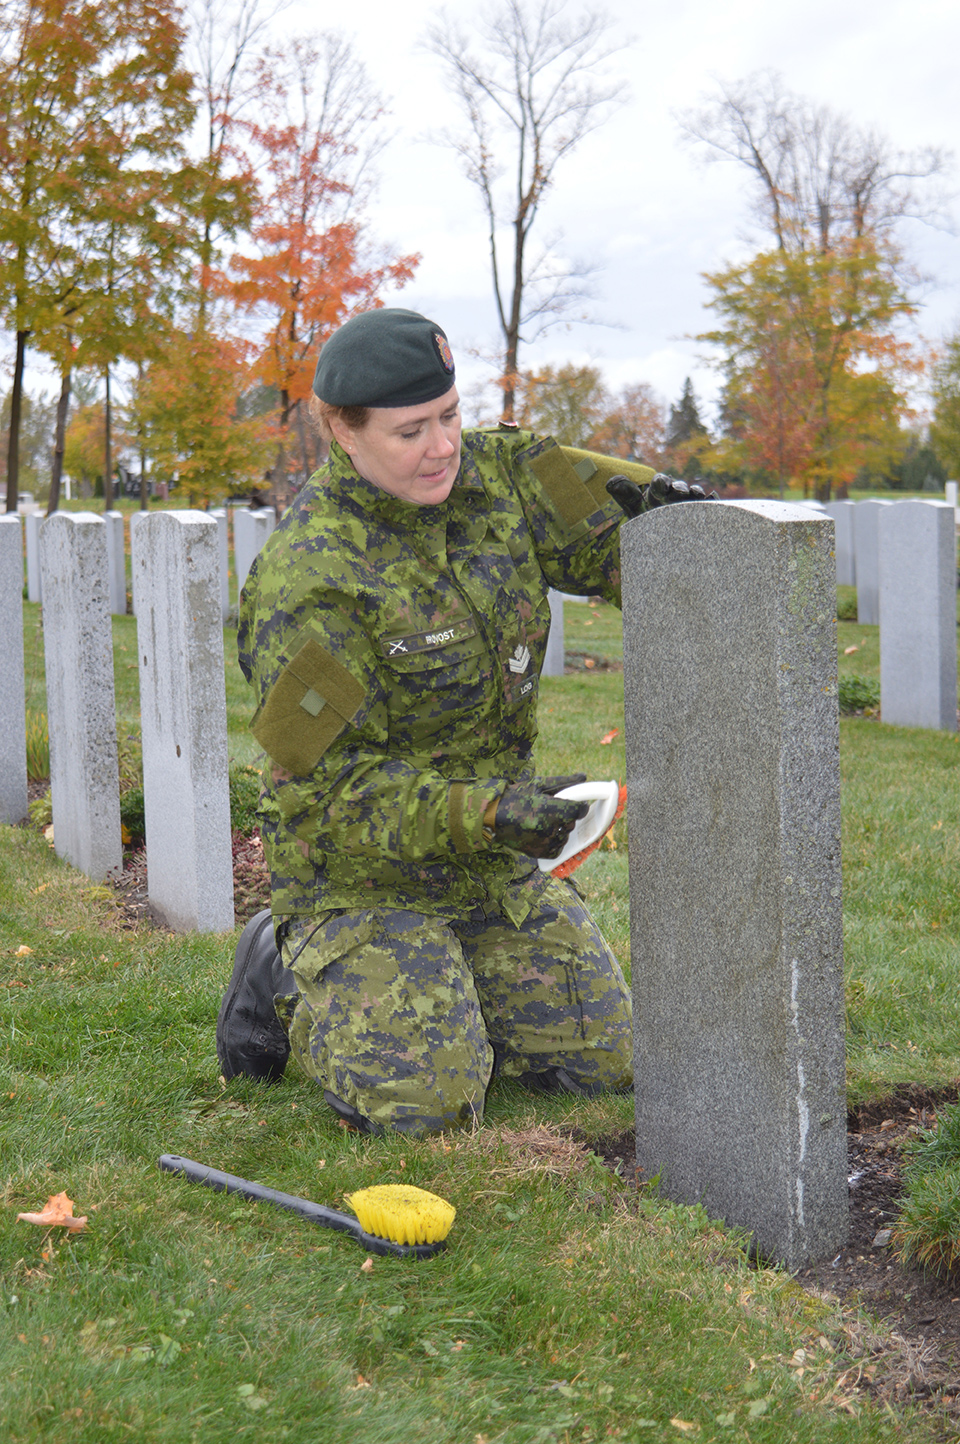 Master Corporal Richelle Provost cleans veterans' headstones at the National Military Cemetery in Ottawa on October 27, 2016.